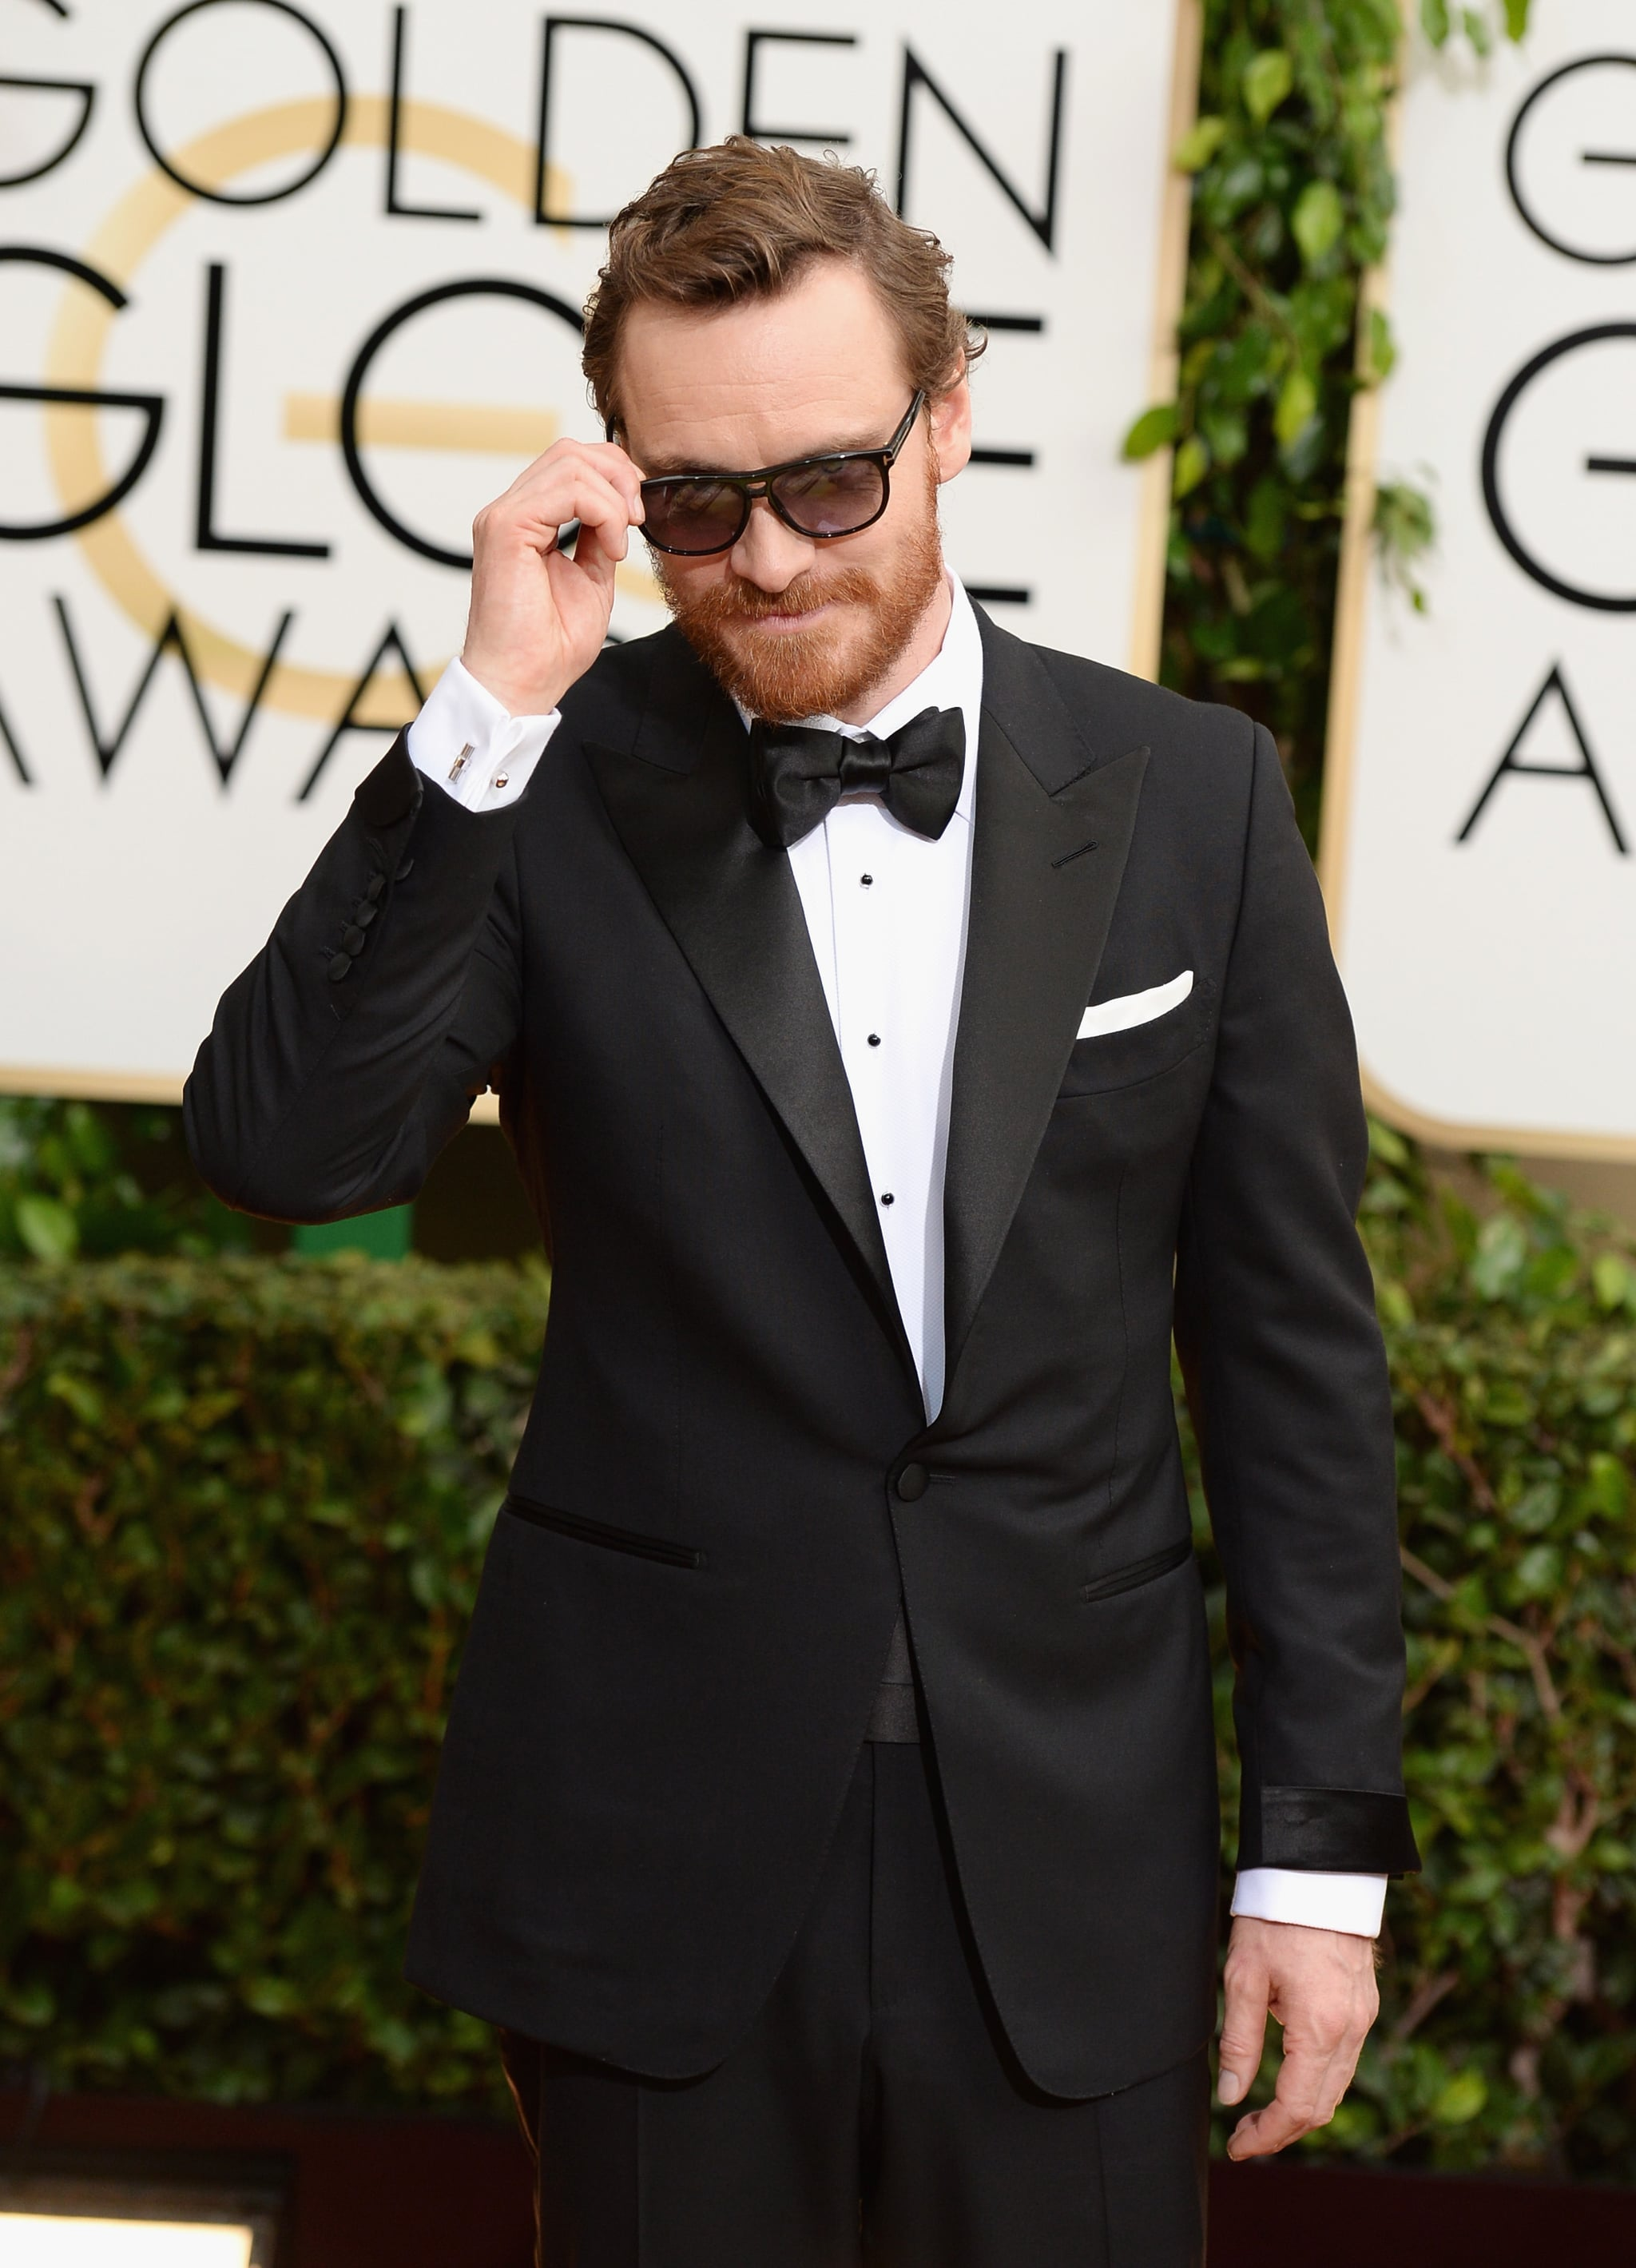 7. Michael Fassbender Shows Up at the Golden Globes